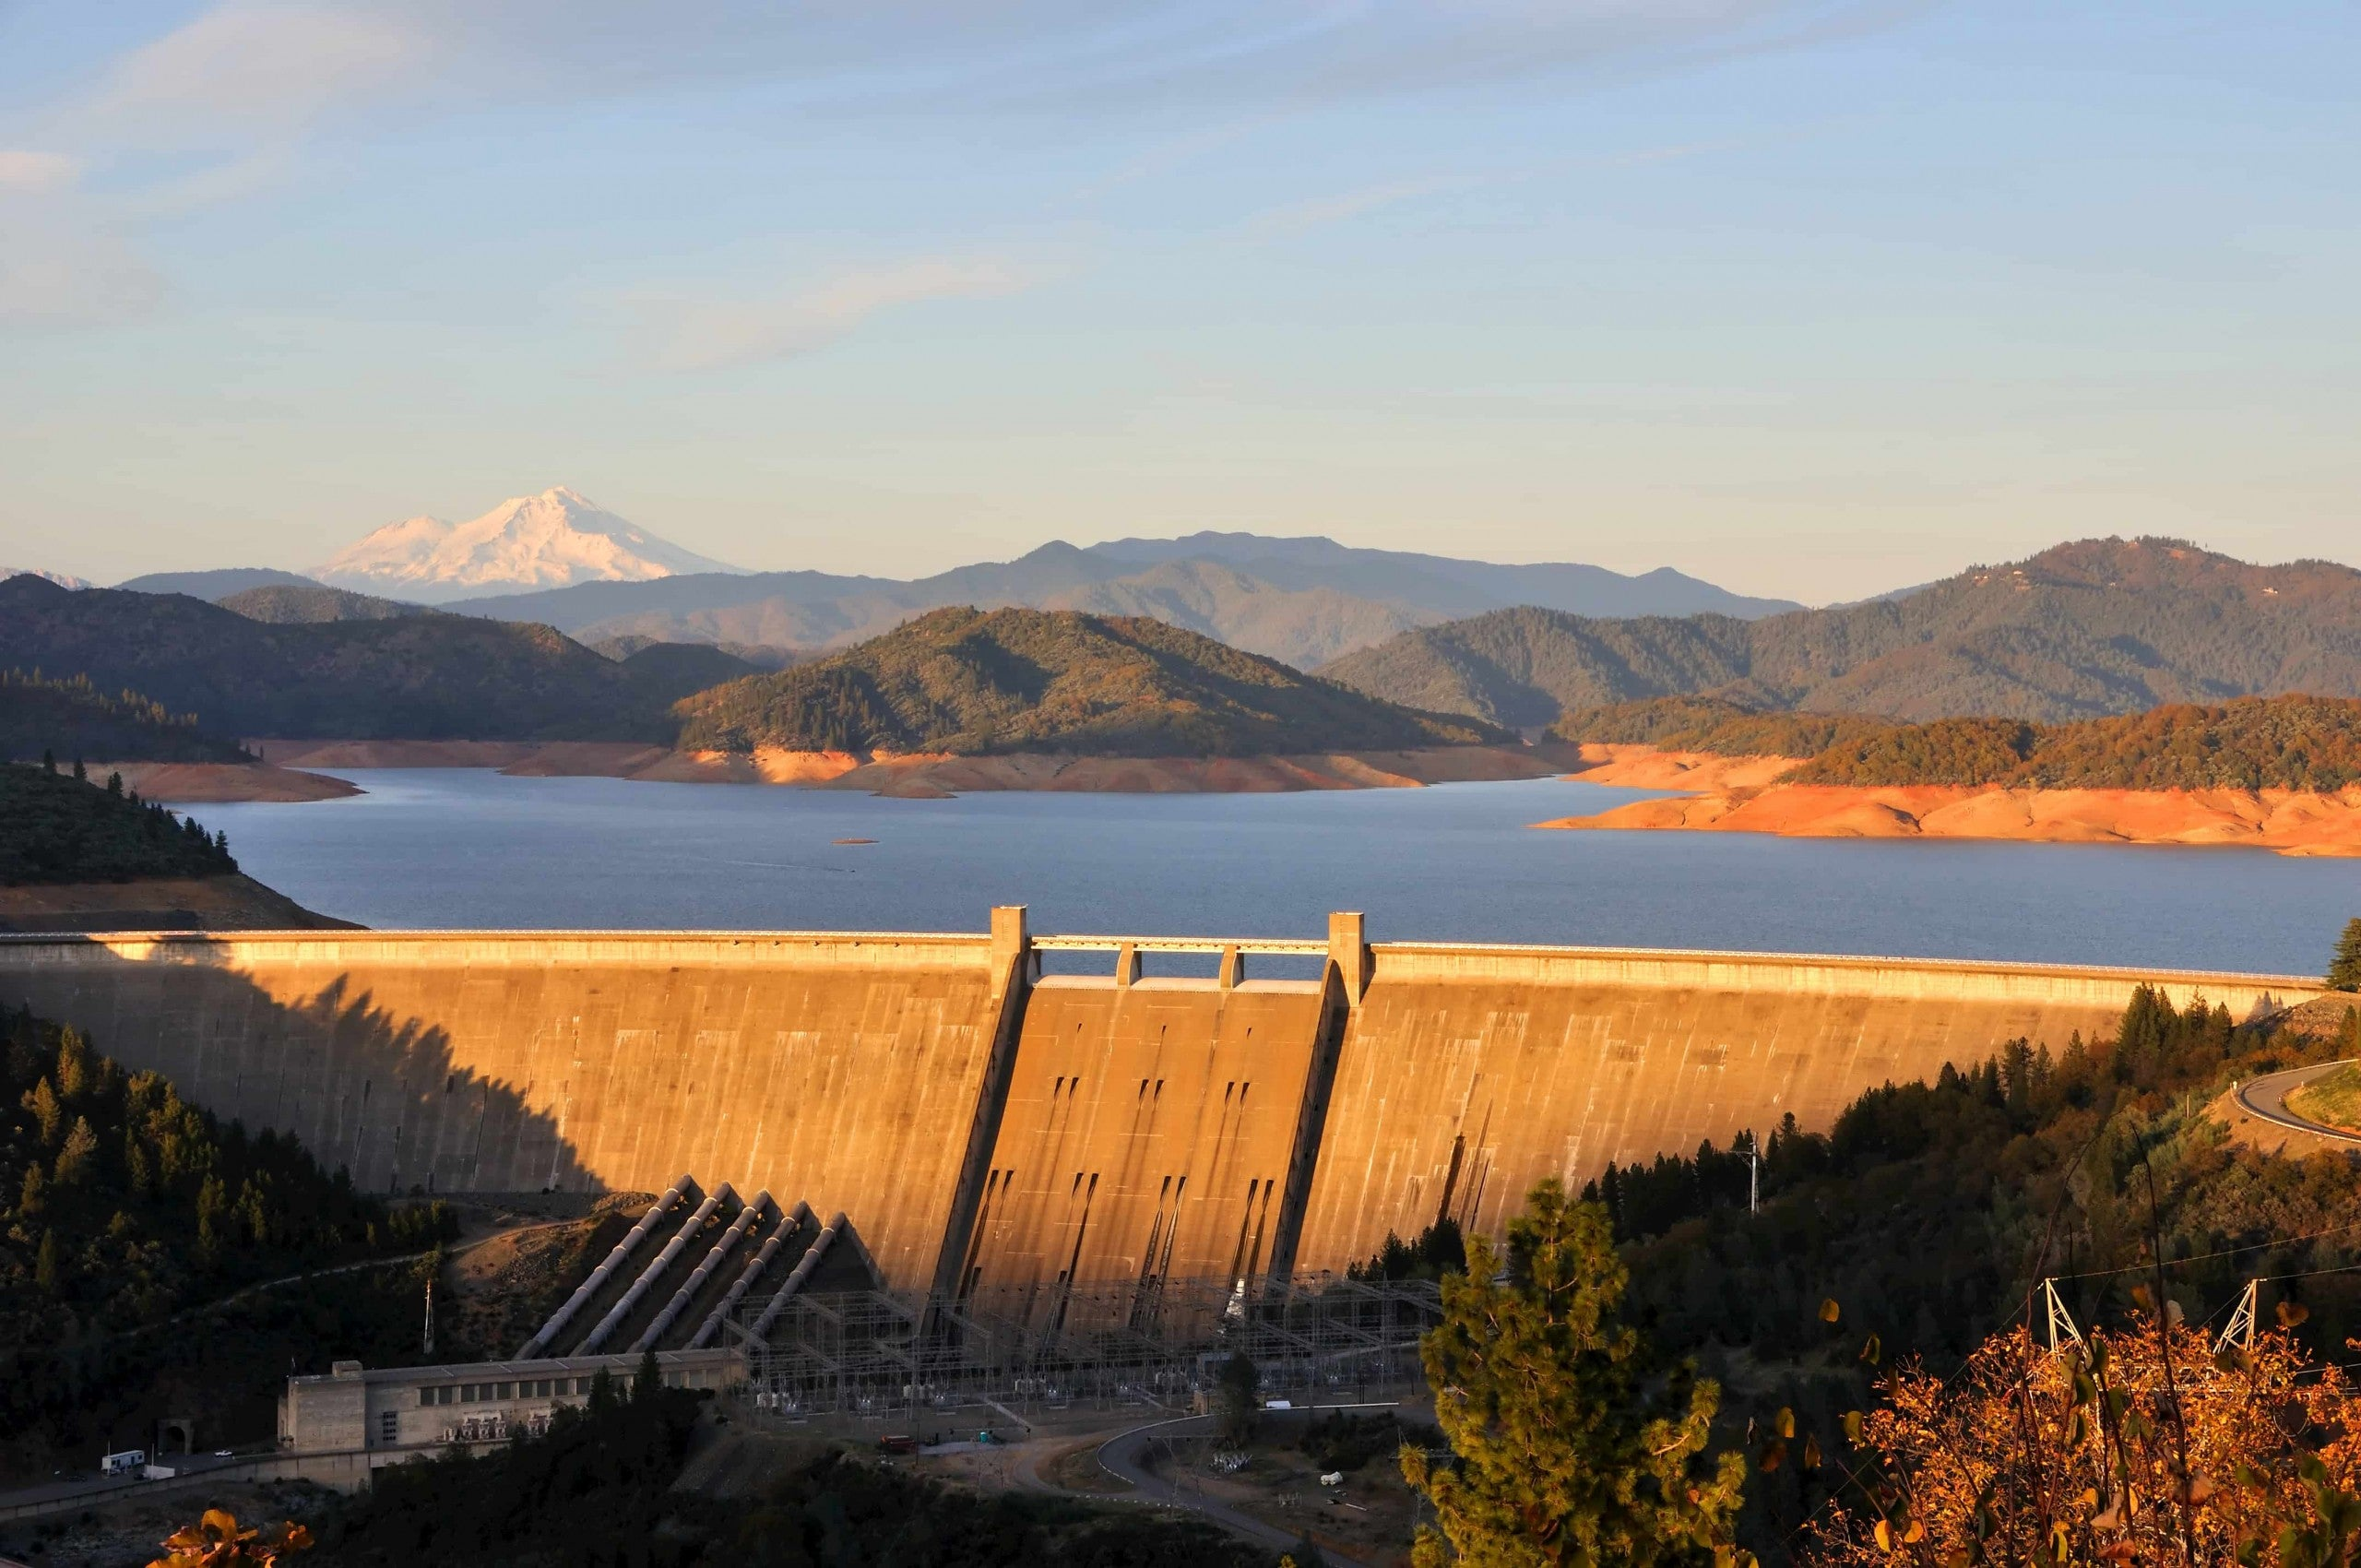 Golden sunlight over the Shasta Dam with MT. Shasta and green hills in the background.